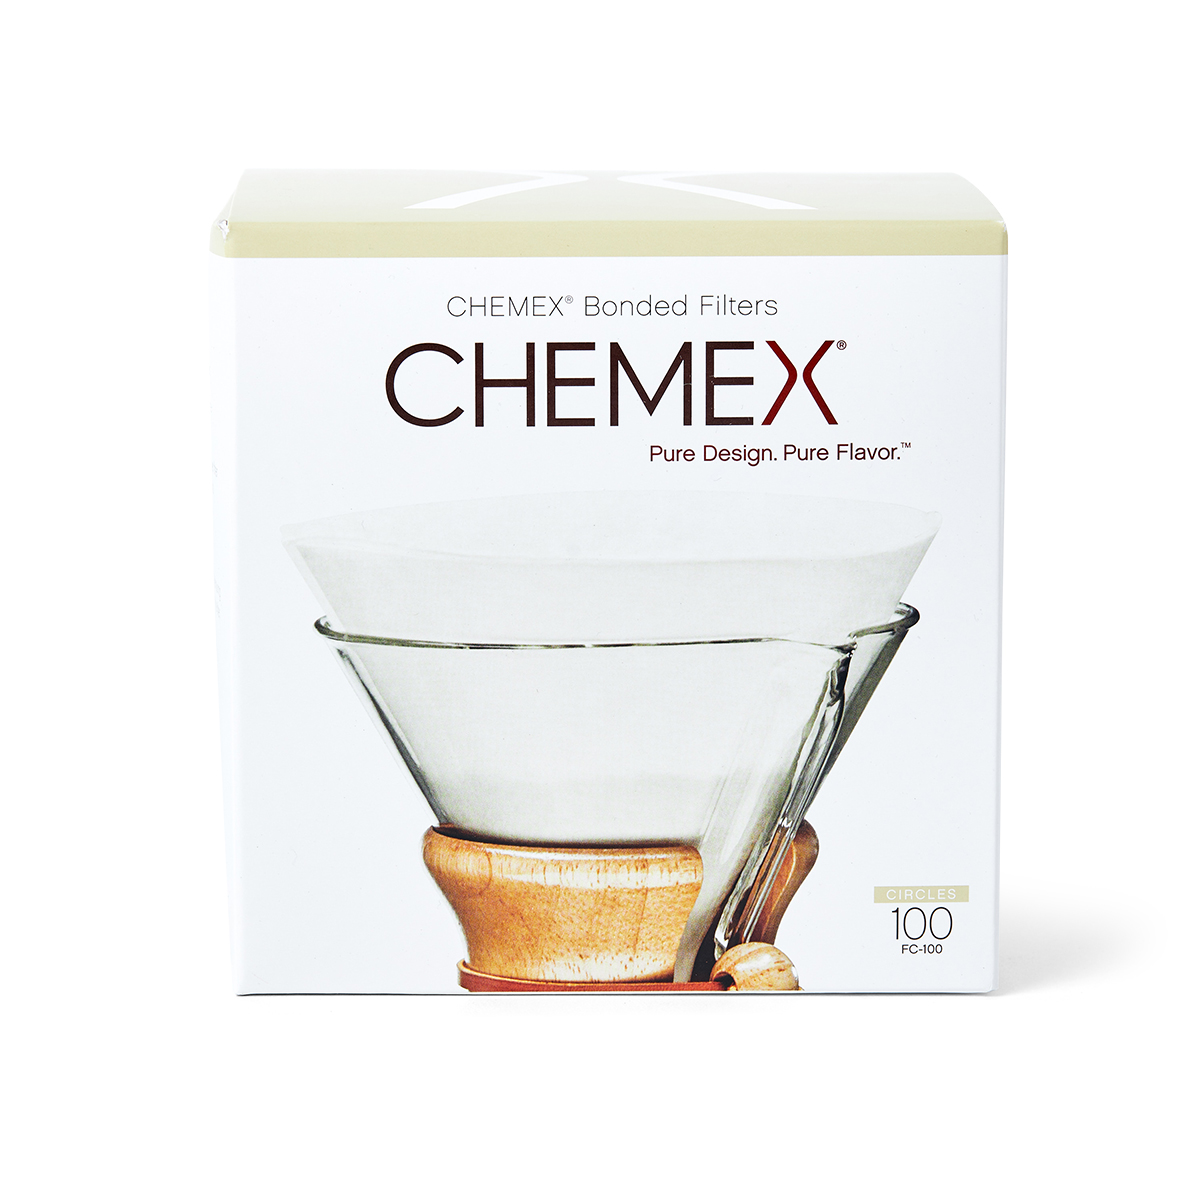 Station 1 Coffee House - Chemex Bonded Filters - Circle